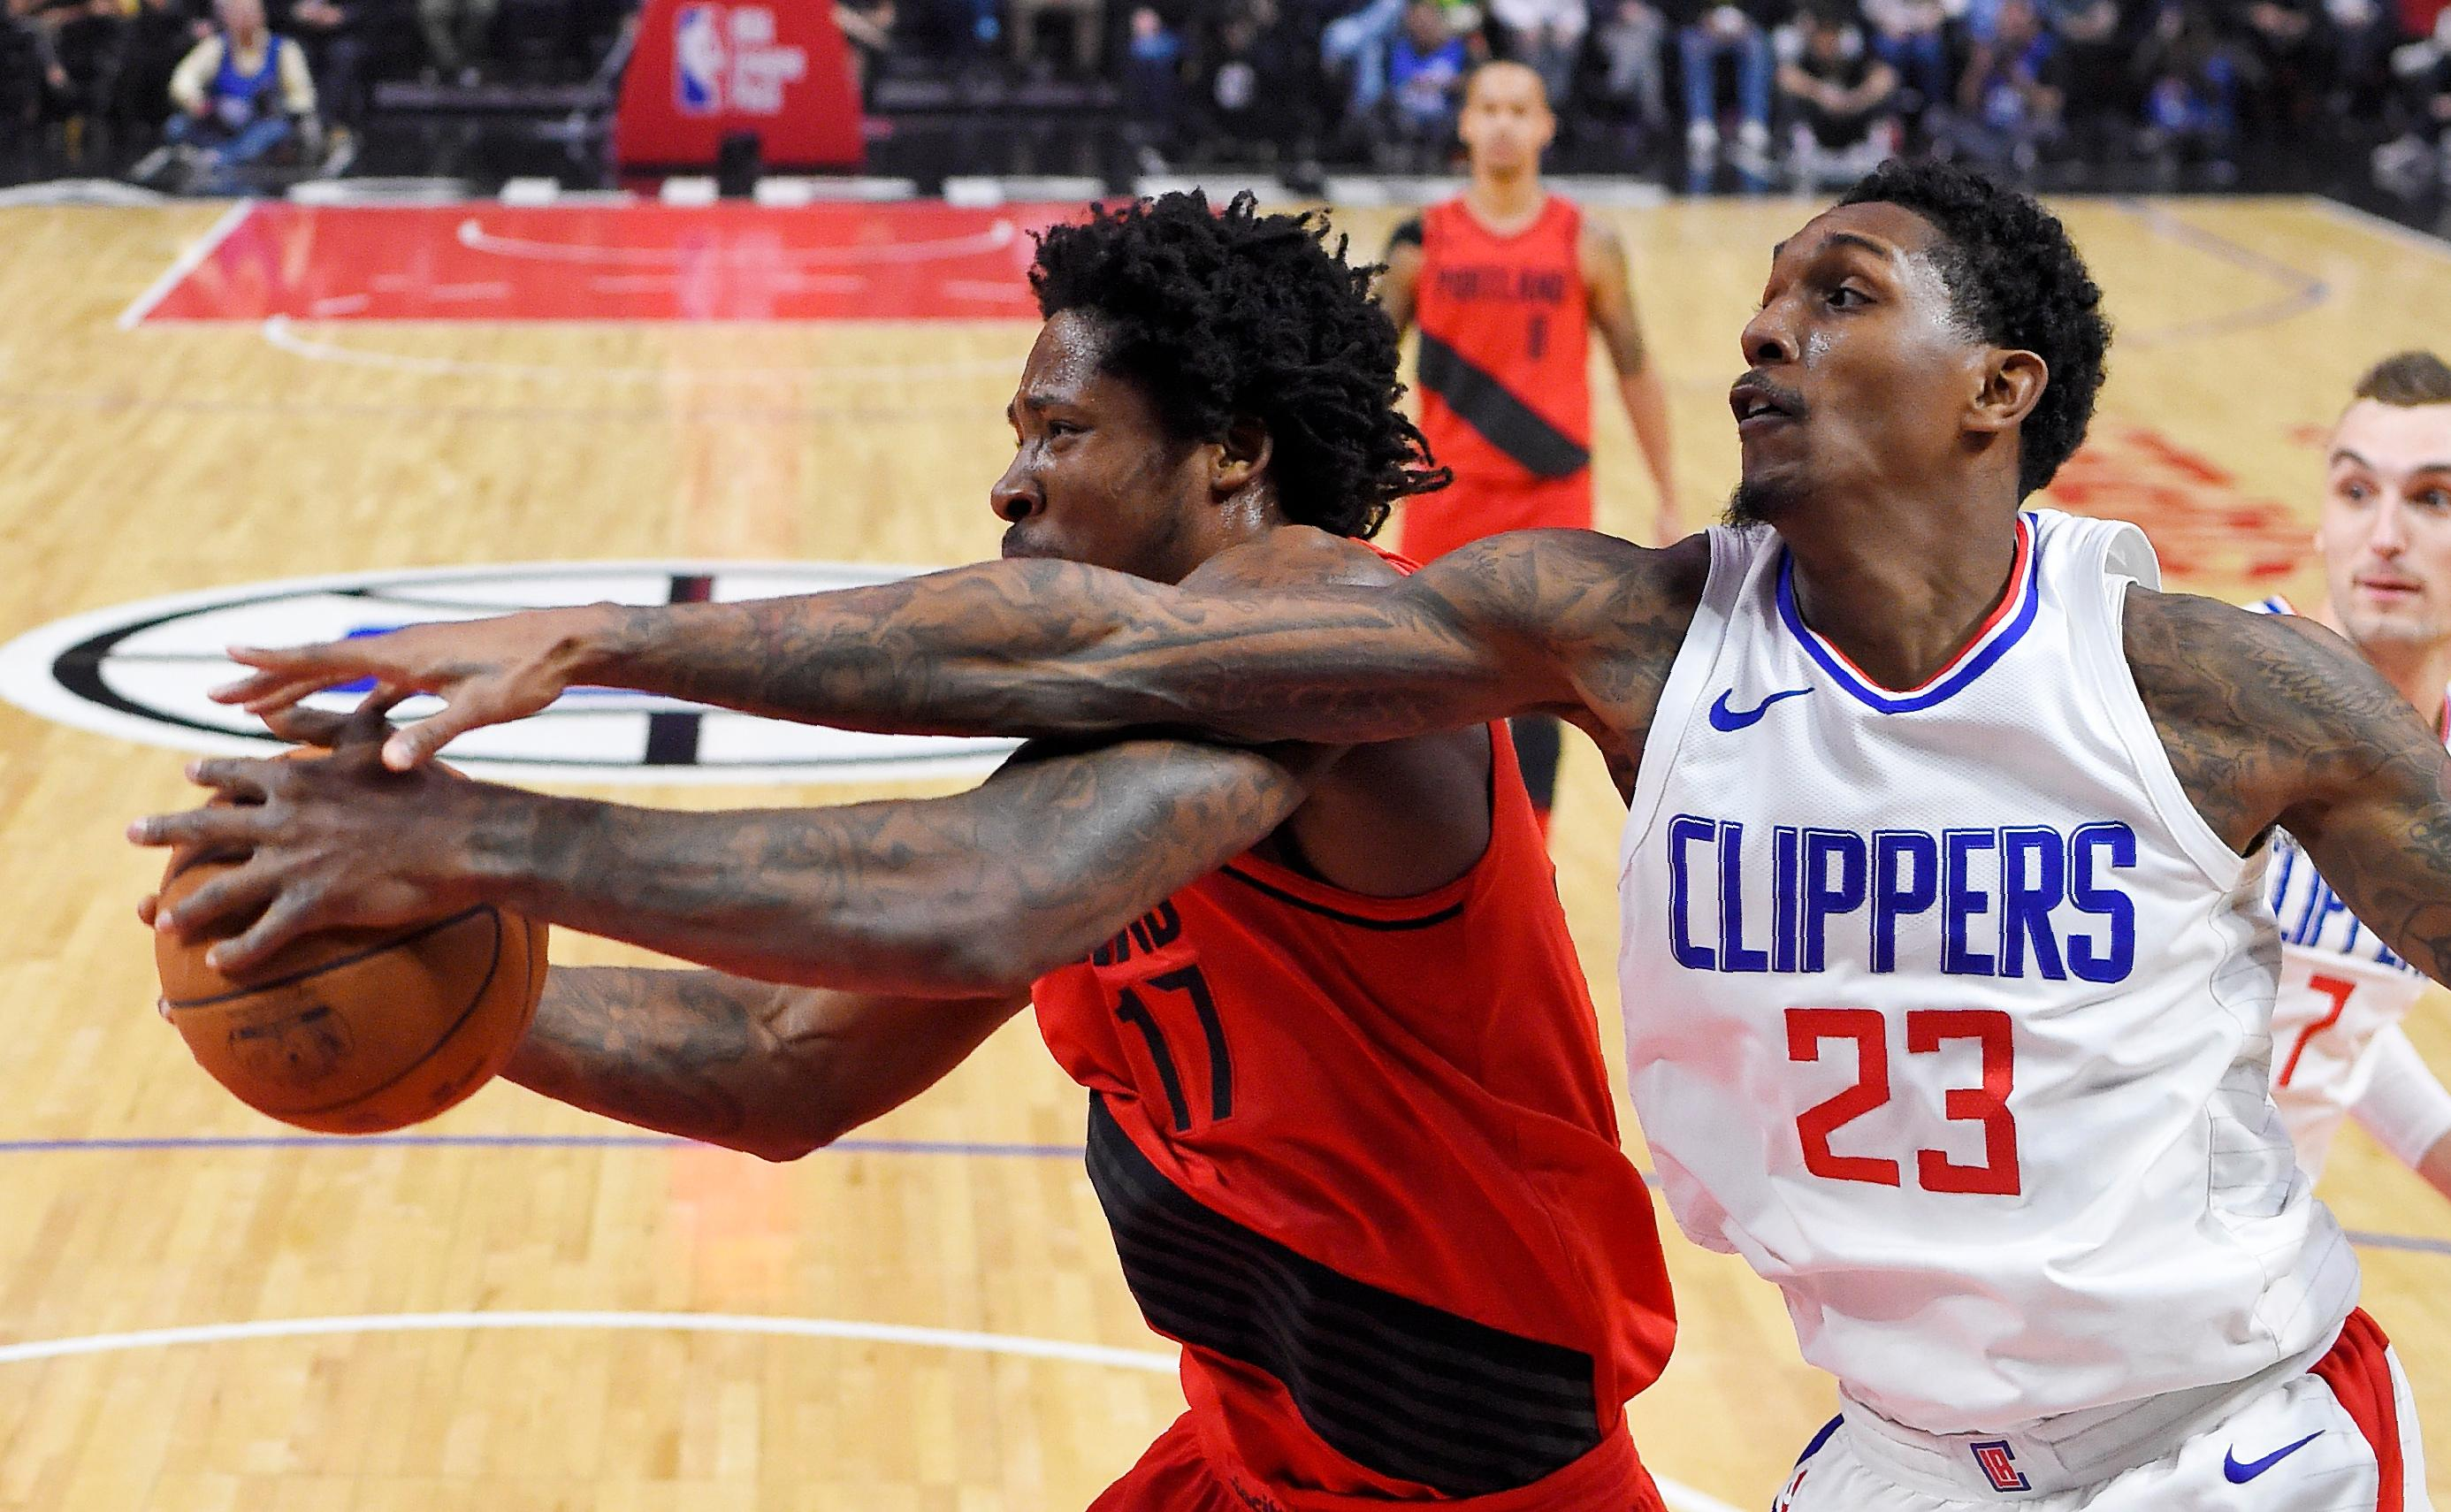 Portland Trail Blazers forward Ed Davis, left, and Los Angeles Clippers guard Lou Williams reach for a rebound during the first half of an NBA basketball game, Tuesday, Jan. 30, 2018, in Los Angeles. (AP Photo/Mark J. Terrill)